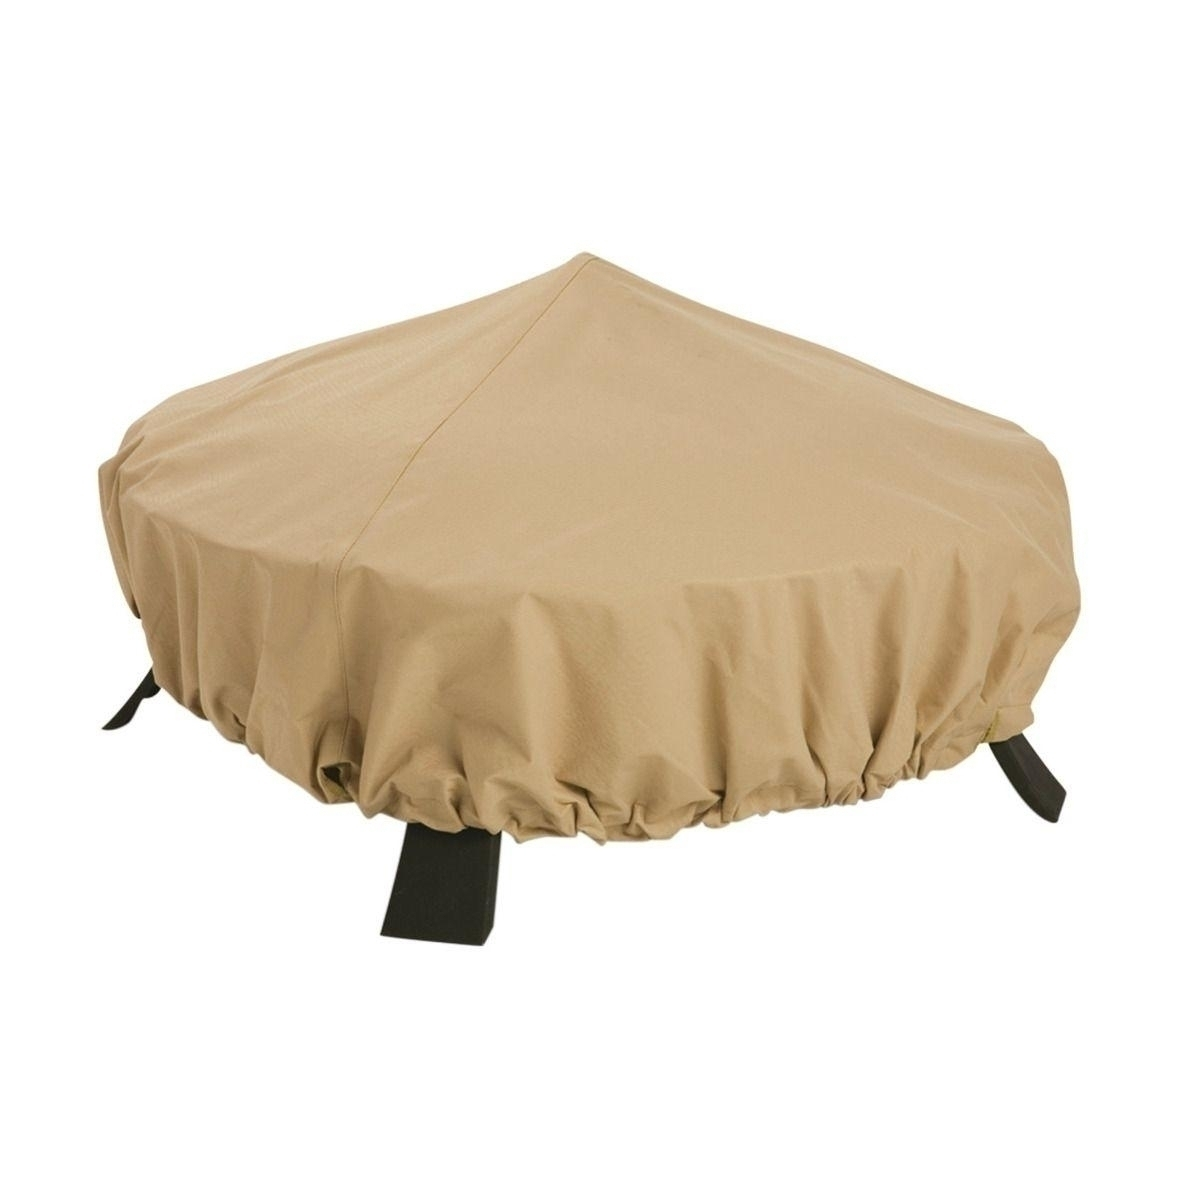 Firepit Cover - Full Coverage Sand - 36inch - 10cs - 59932-ec - Outdoor Living 59932-EC